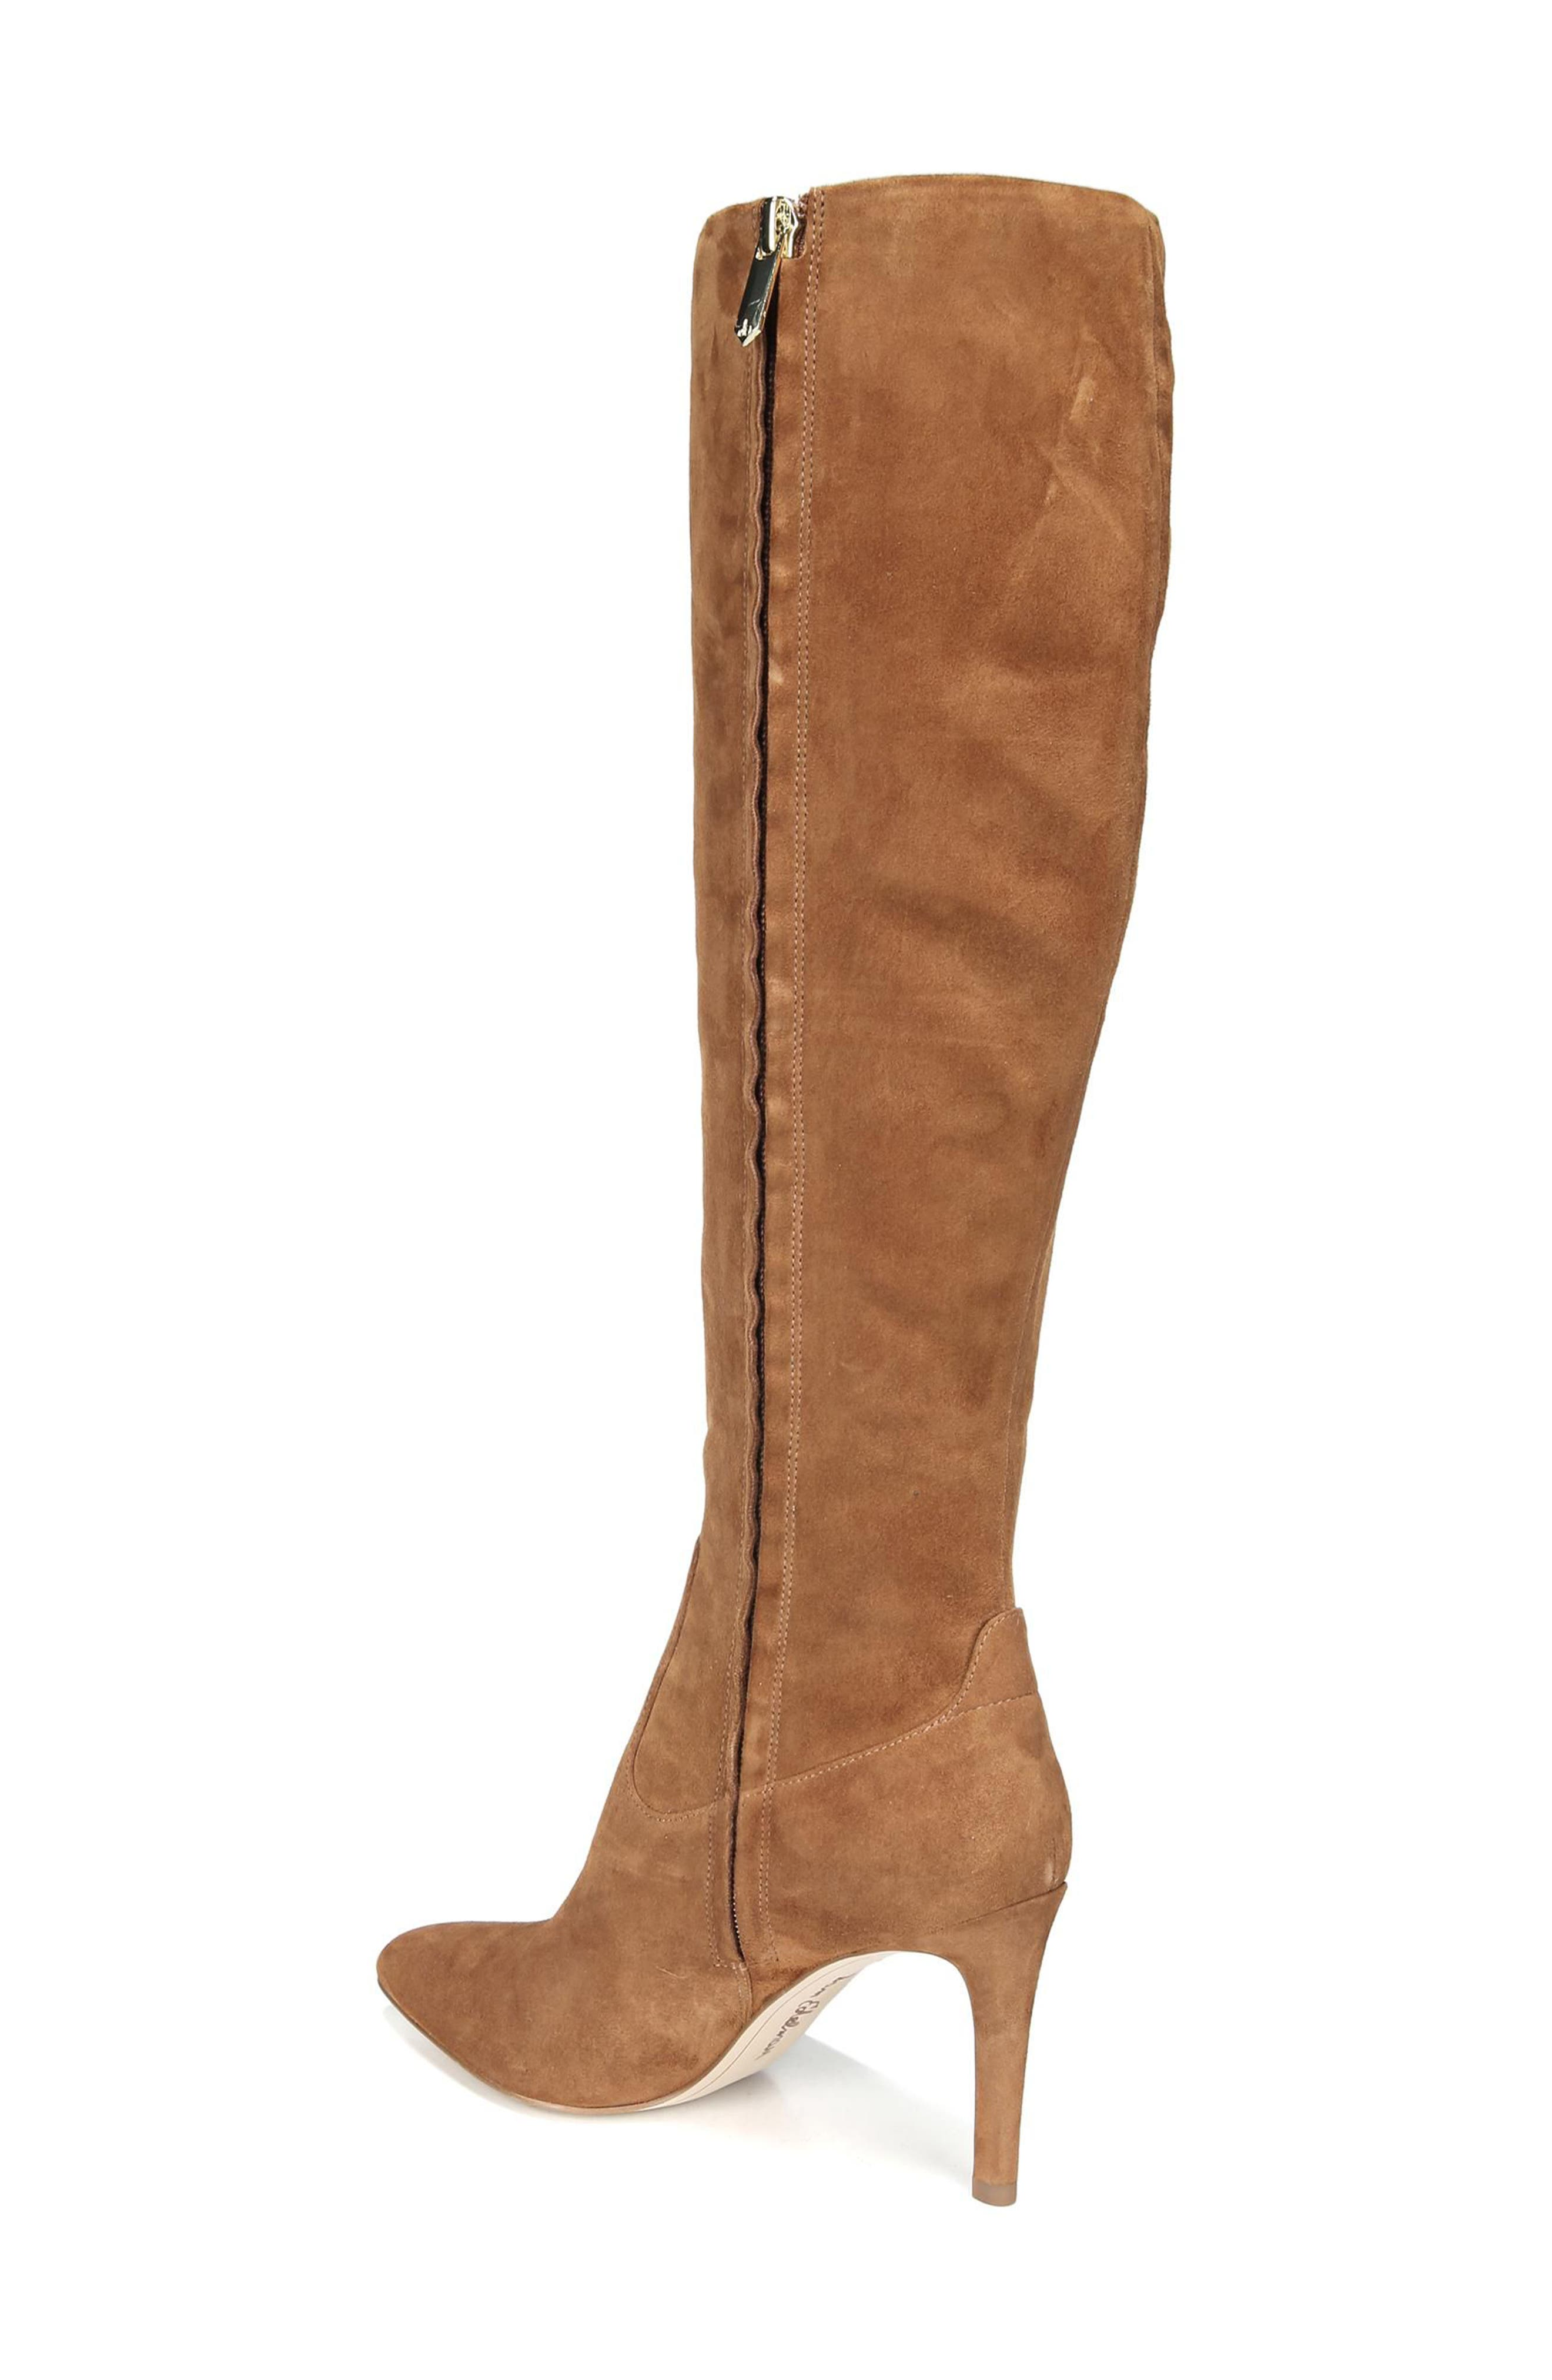 Olencia Knee High Boot,                             Alternate thumbnail 2, color,                             Luggage Suede